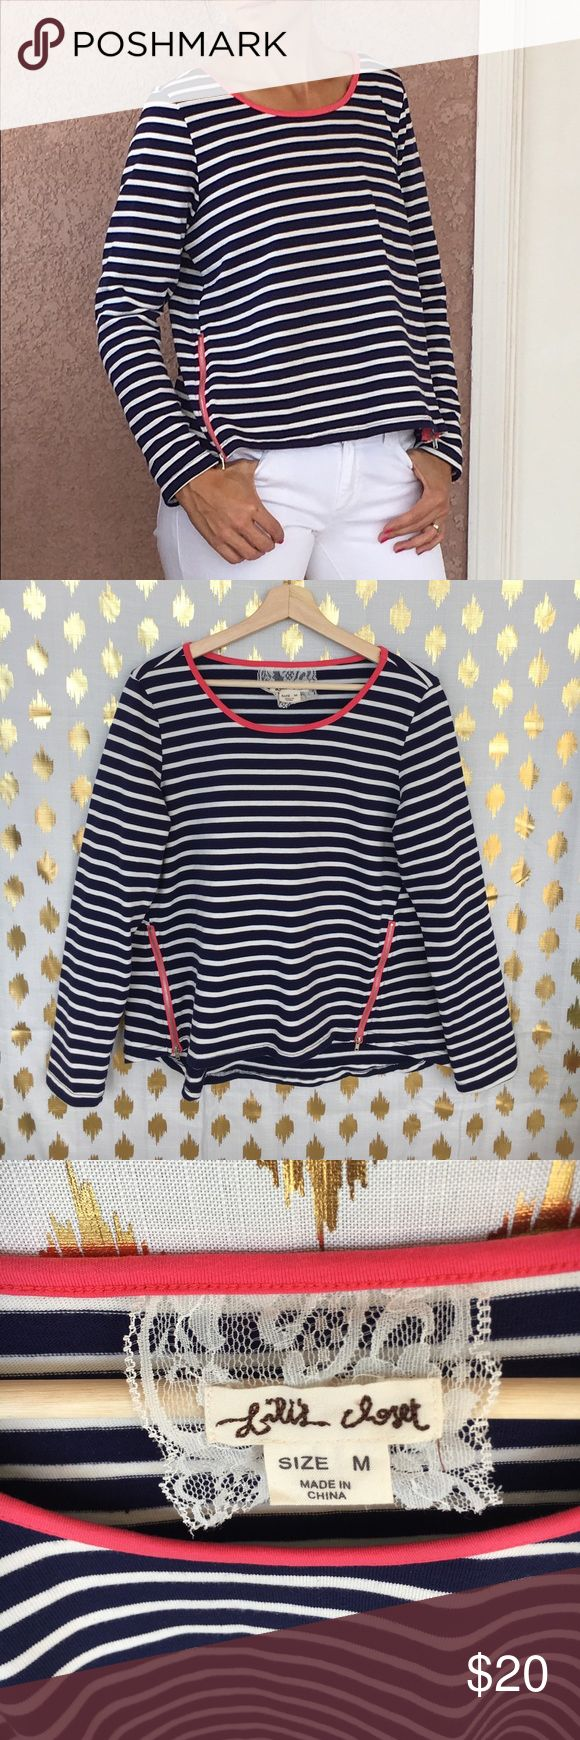 Lili's Closet Anthro striped long sleeve top Navy/white Striped long sleeve top with pink accent ribbing around neck. Detail zippers with pink ribbing at bottom. *Paired with White Micheal Kors jeans in another listing. Anthropologie Tops Tees - Long Sleeve